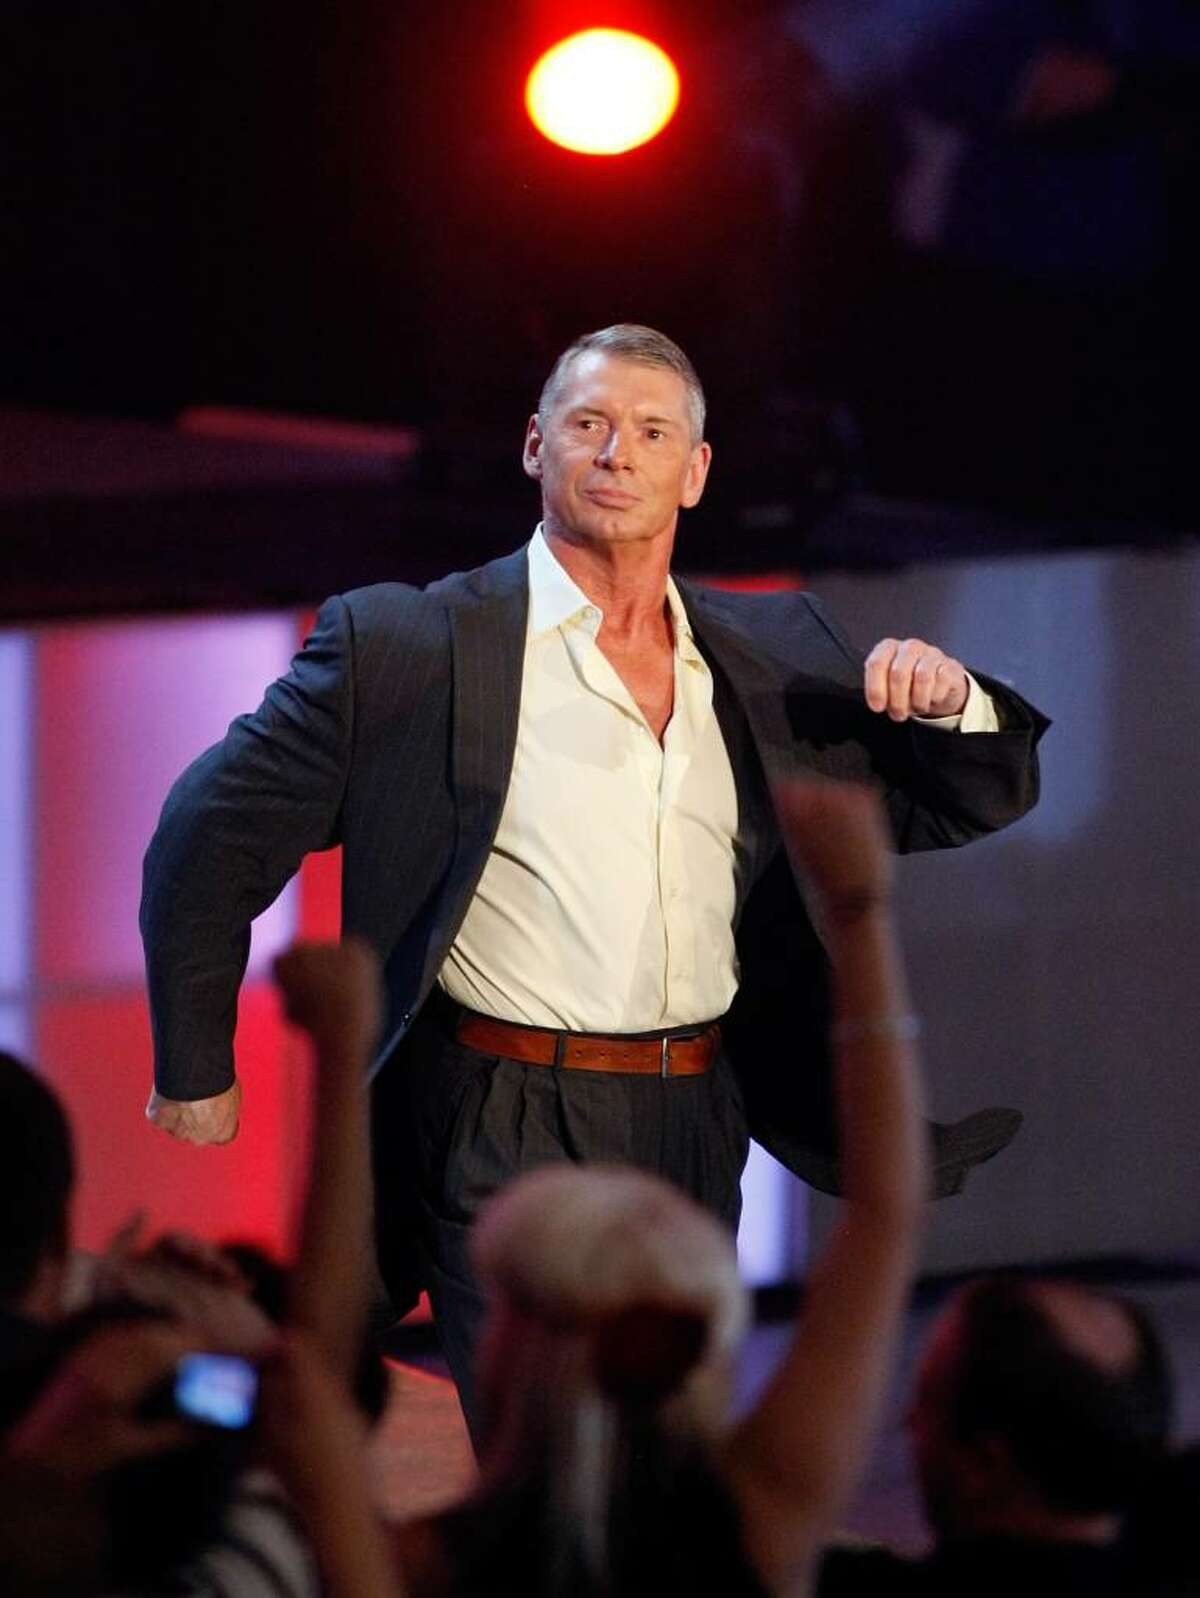 World Wrestling Entertainment Inc. Chairman Vince McMahon is introduced during the WWE Monday Night Raw show at the Thomas & Mack Center August 24, 2009 in Las Vegas, Nevada.